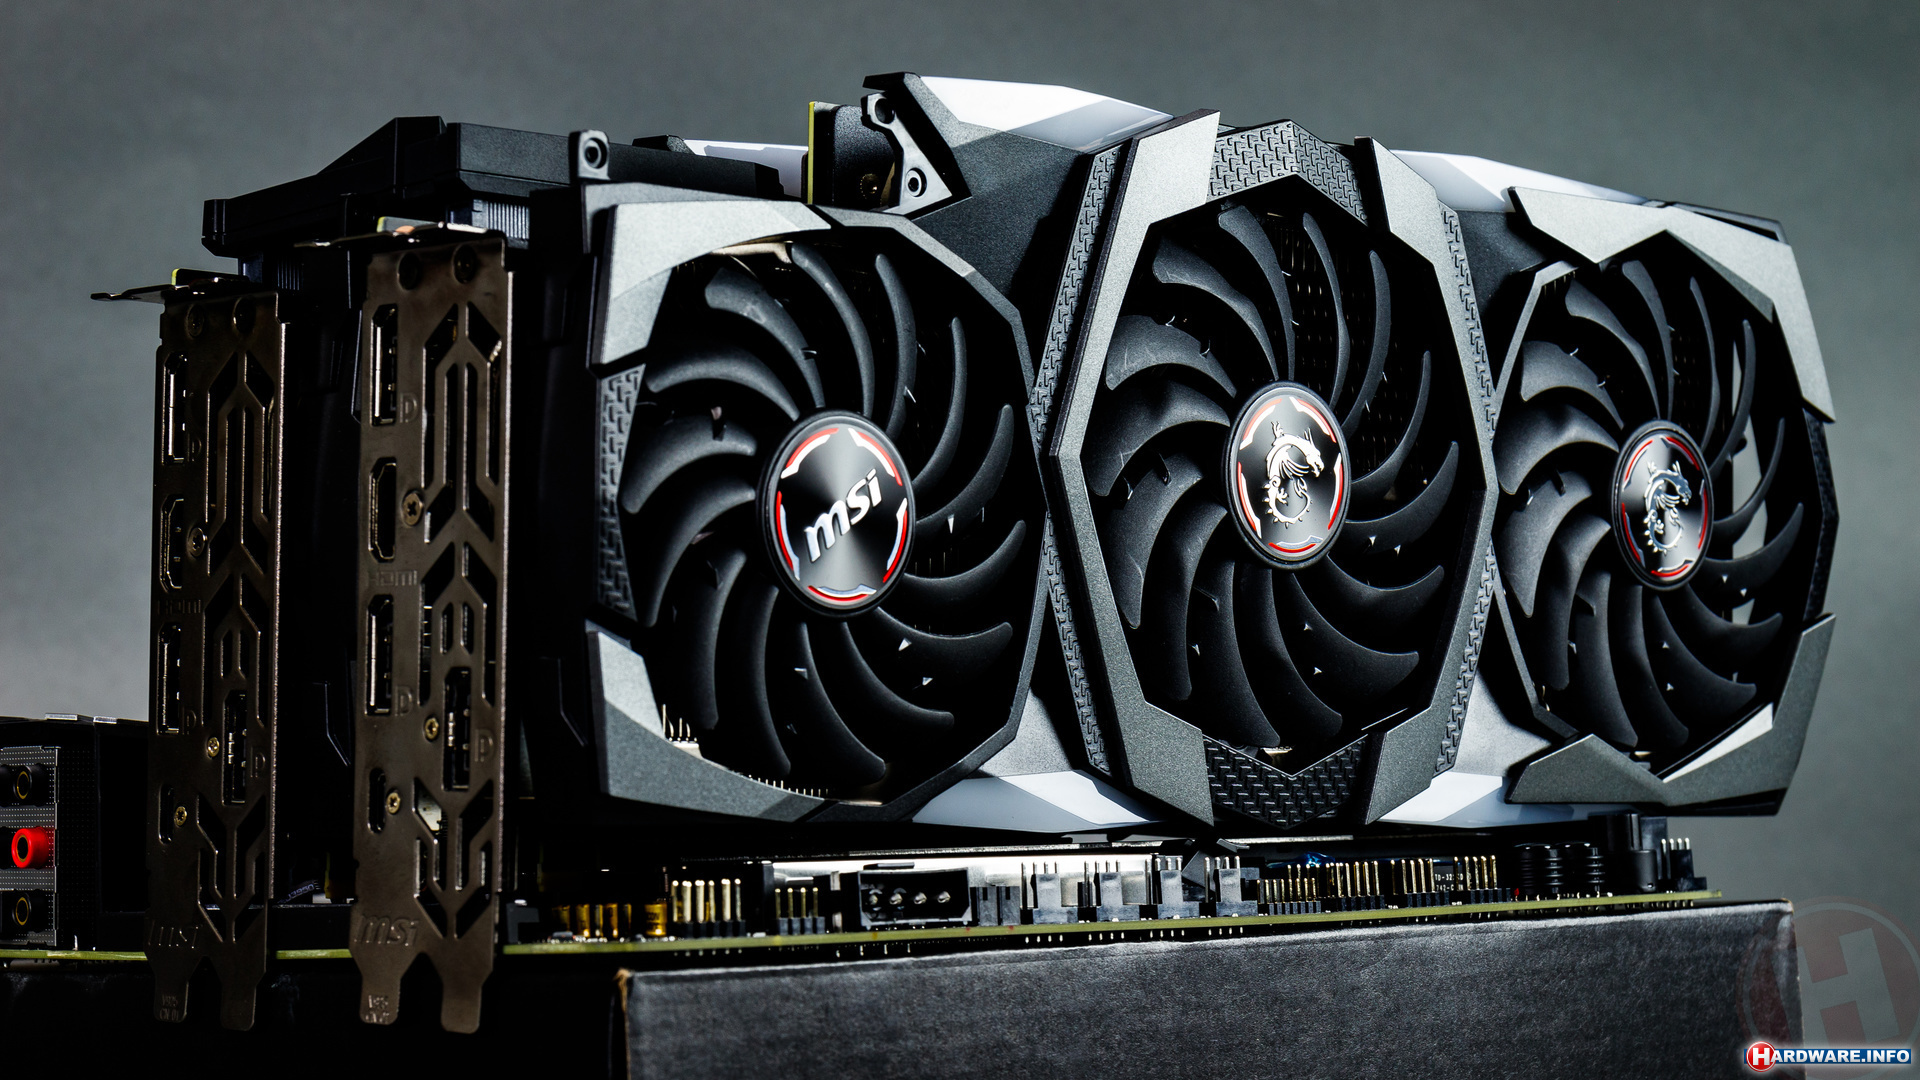 Nvidia GeForce RTX 2080 Ti SLI review: Turing in tweevoud